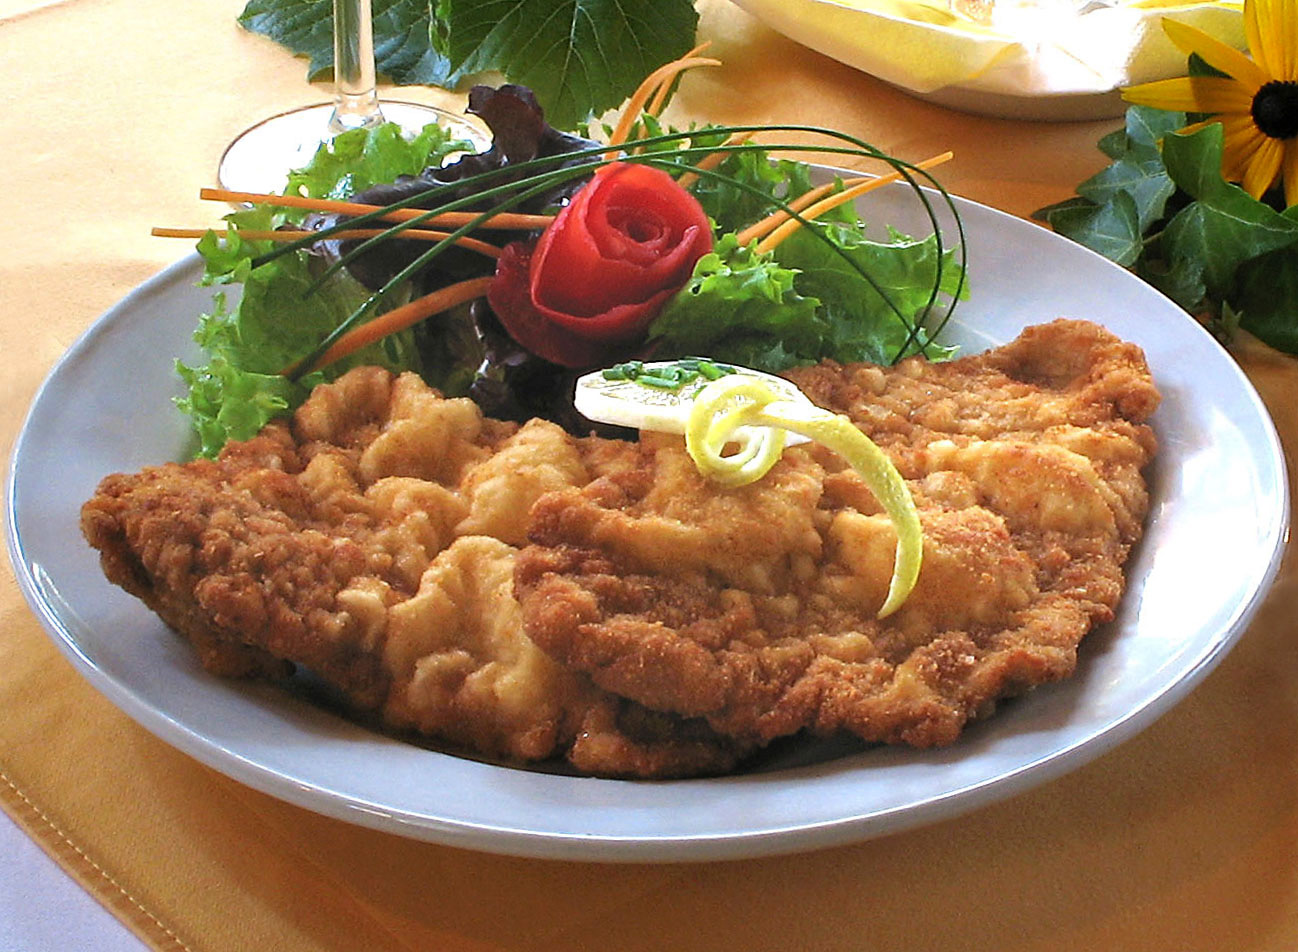 File:Wiener-Schnitzel02.jpg - Wikipedia, the free encyclopedia